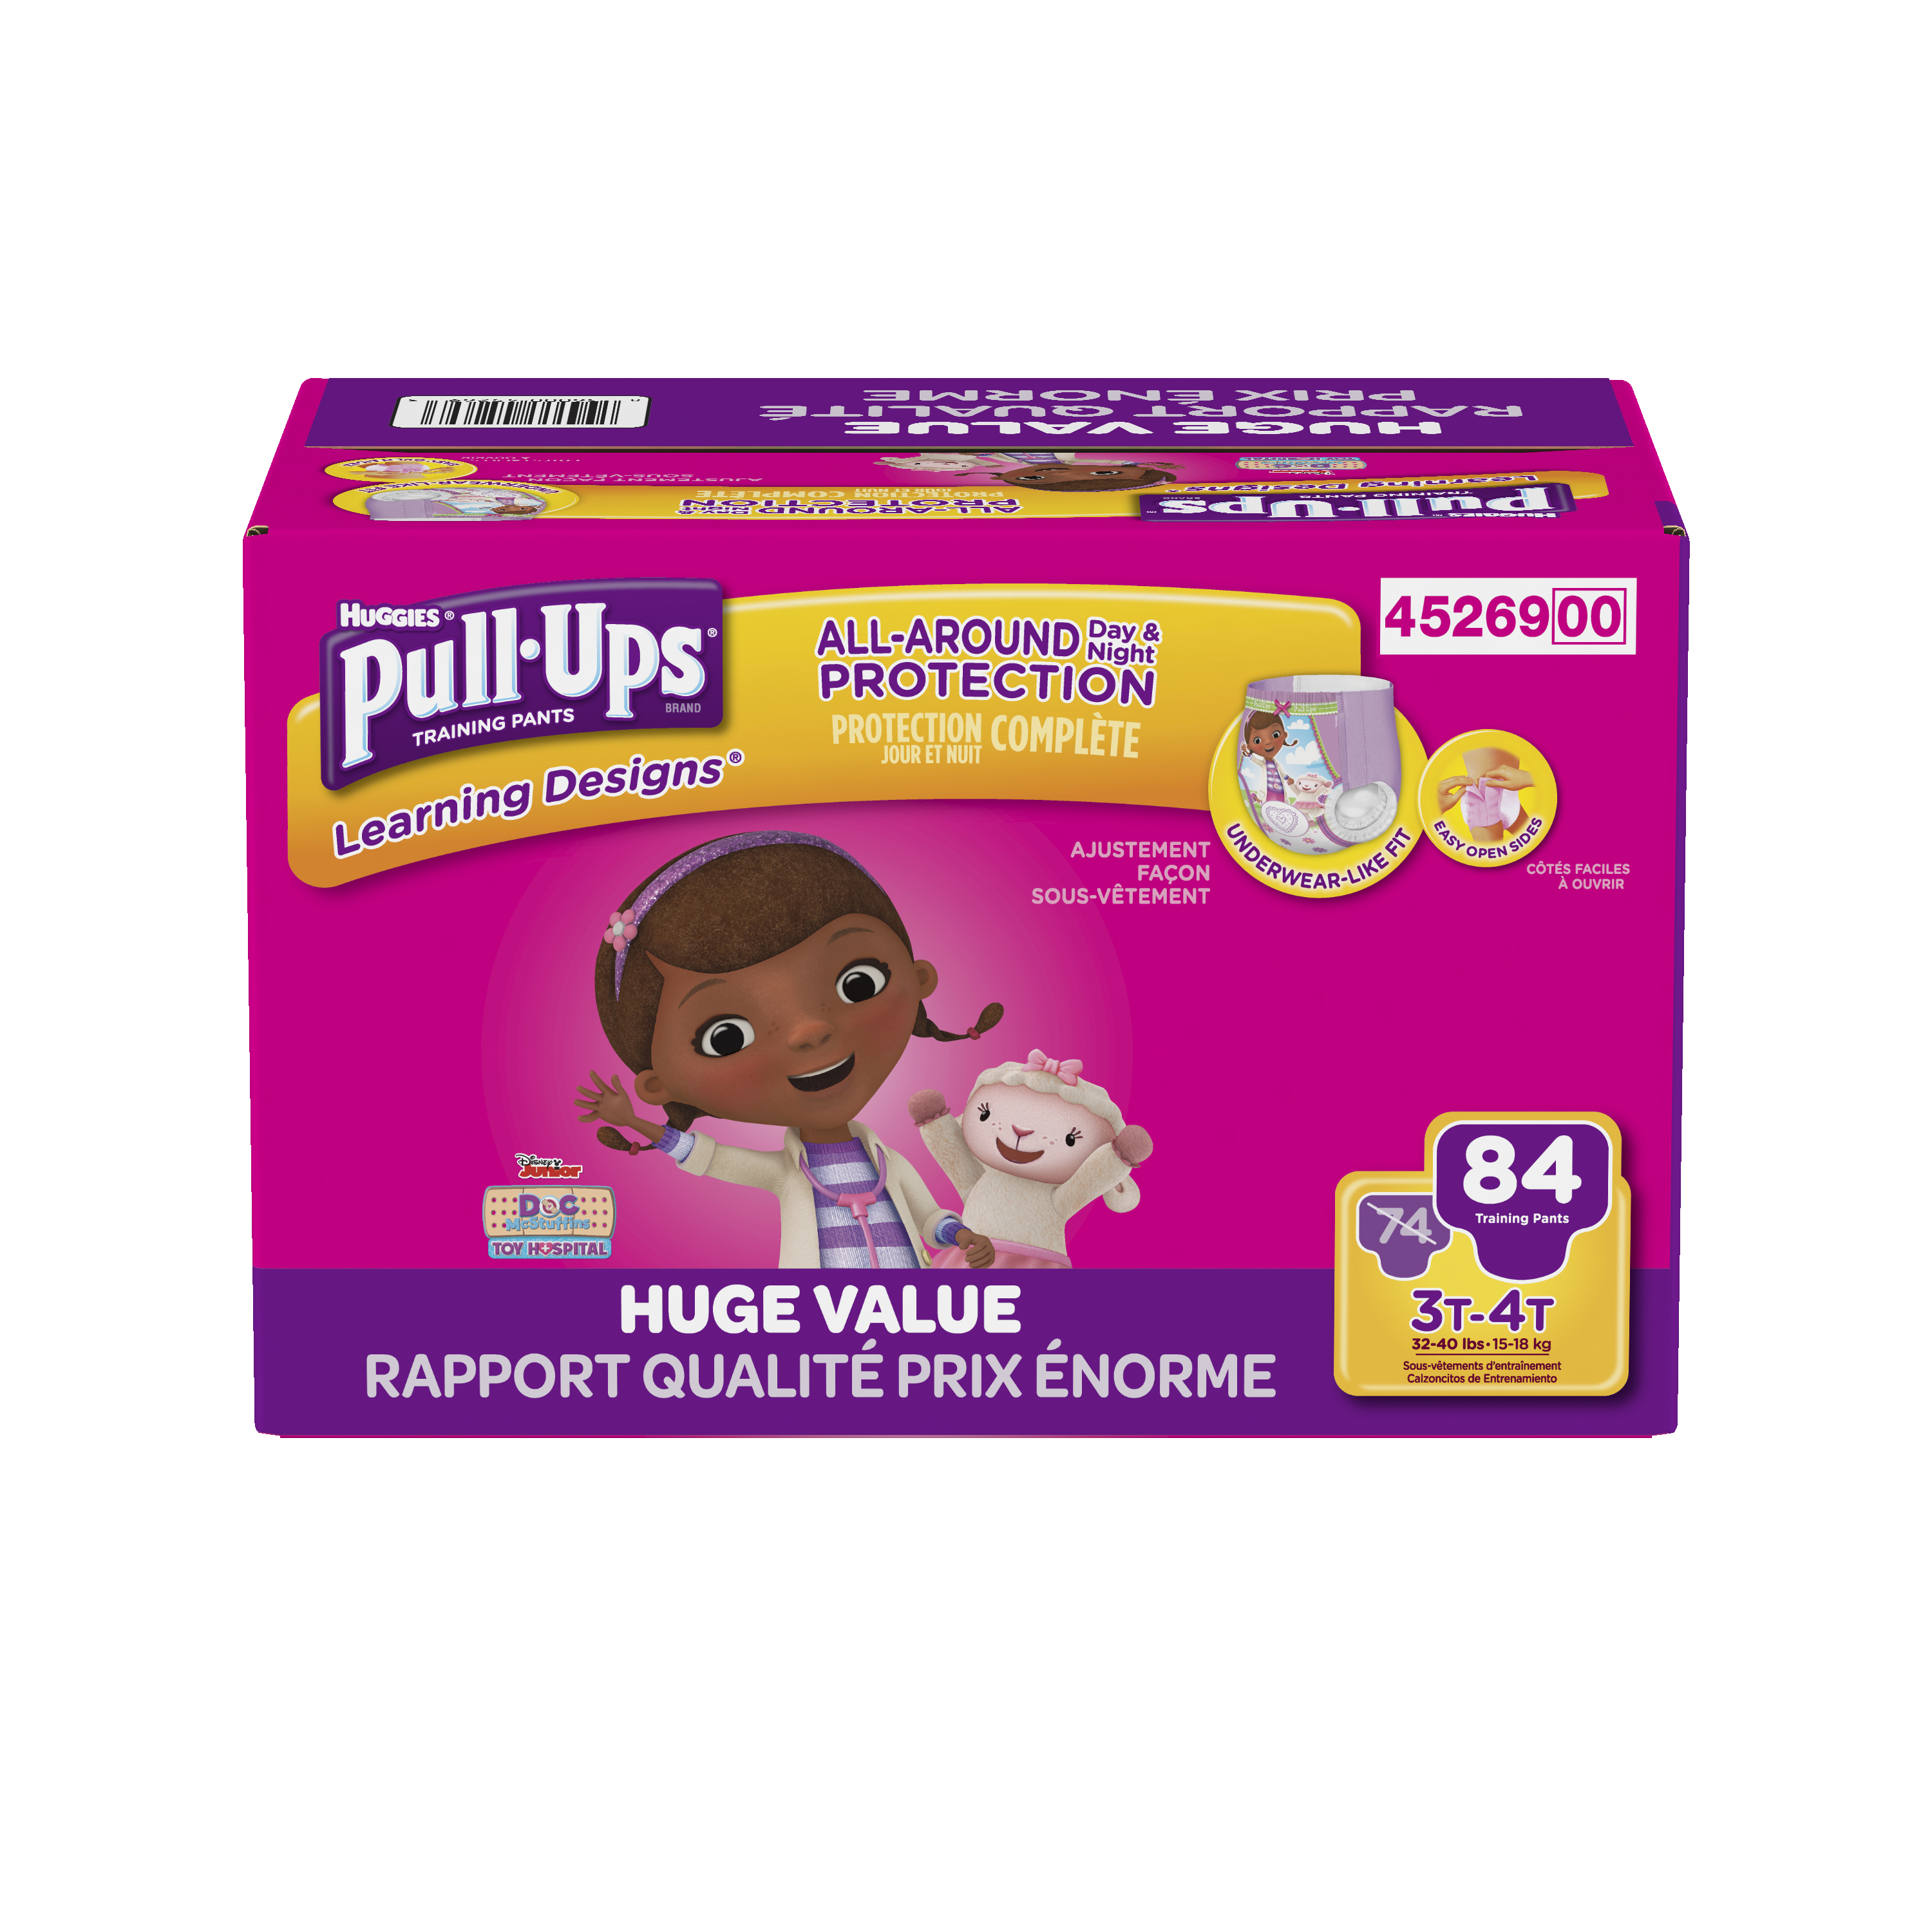 Huggies Pull-Ups Disposable Training Pants - 3T-4T (84ct)